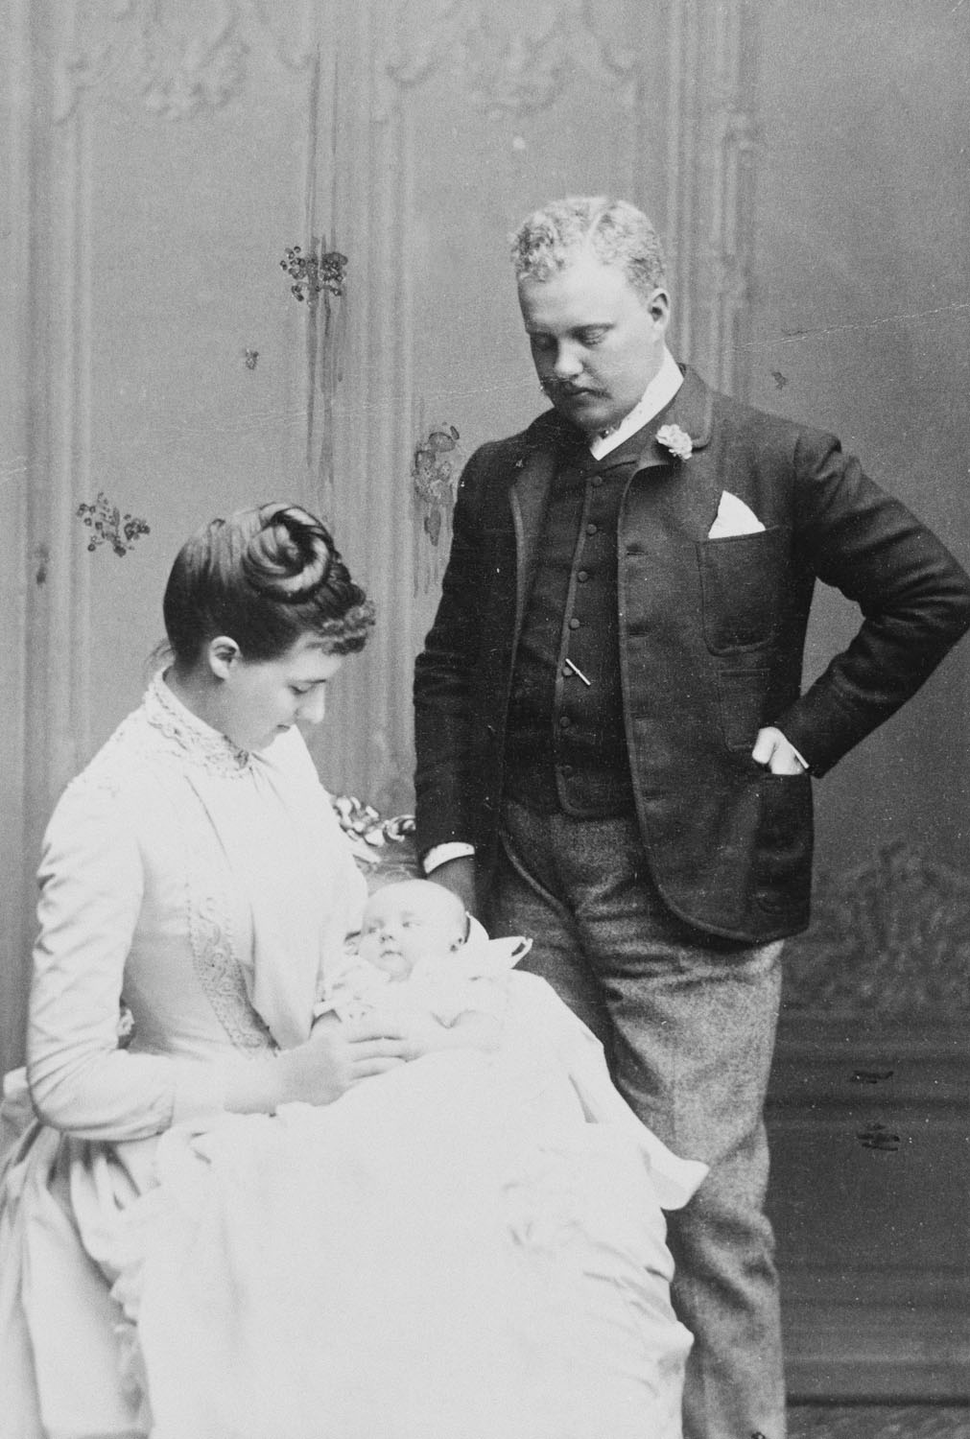 Duke and Duchess of Braganca, Crown Prince and Princess of Portugal with their infant son Don Luis Philippe, 1888